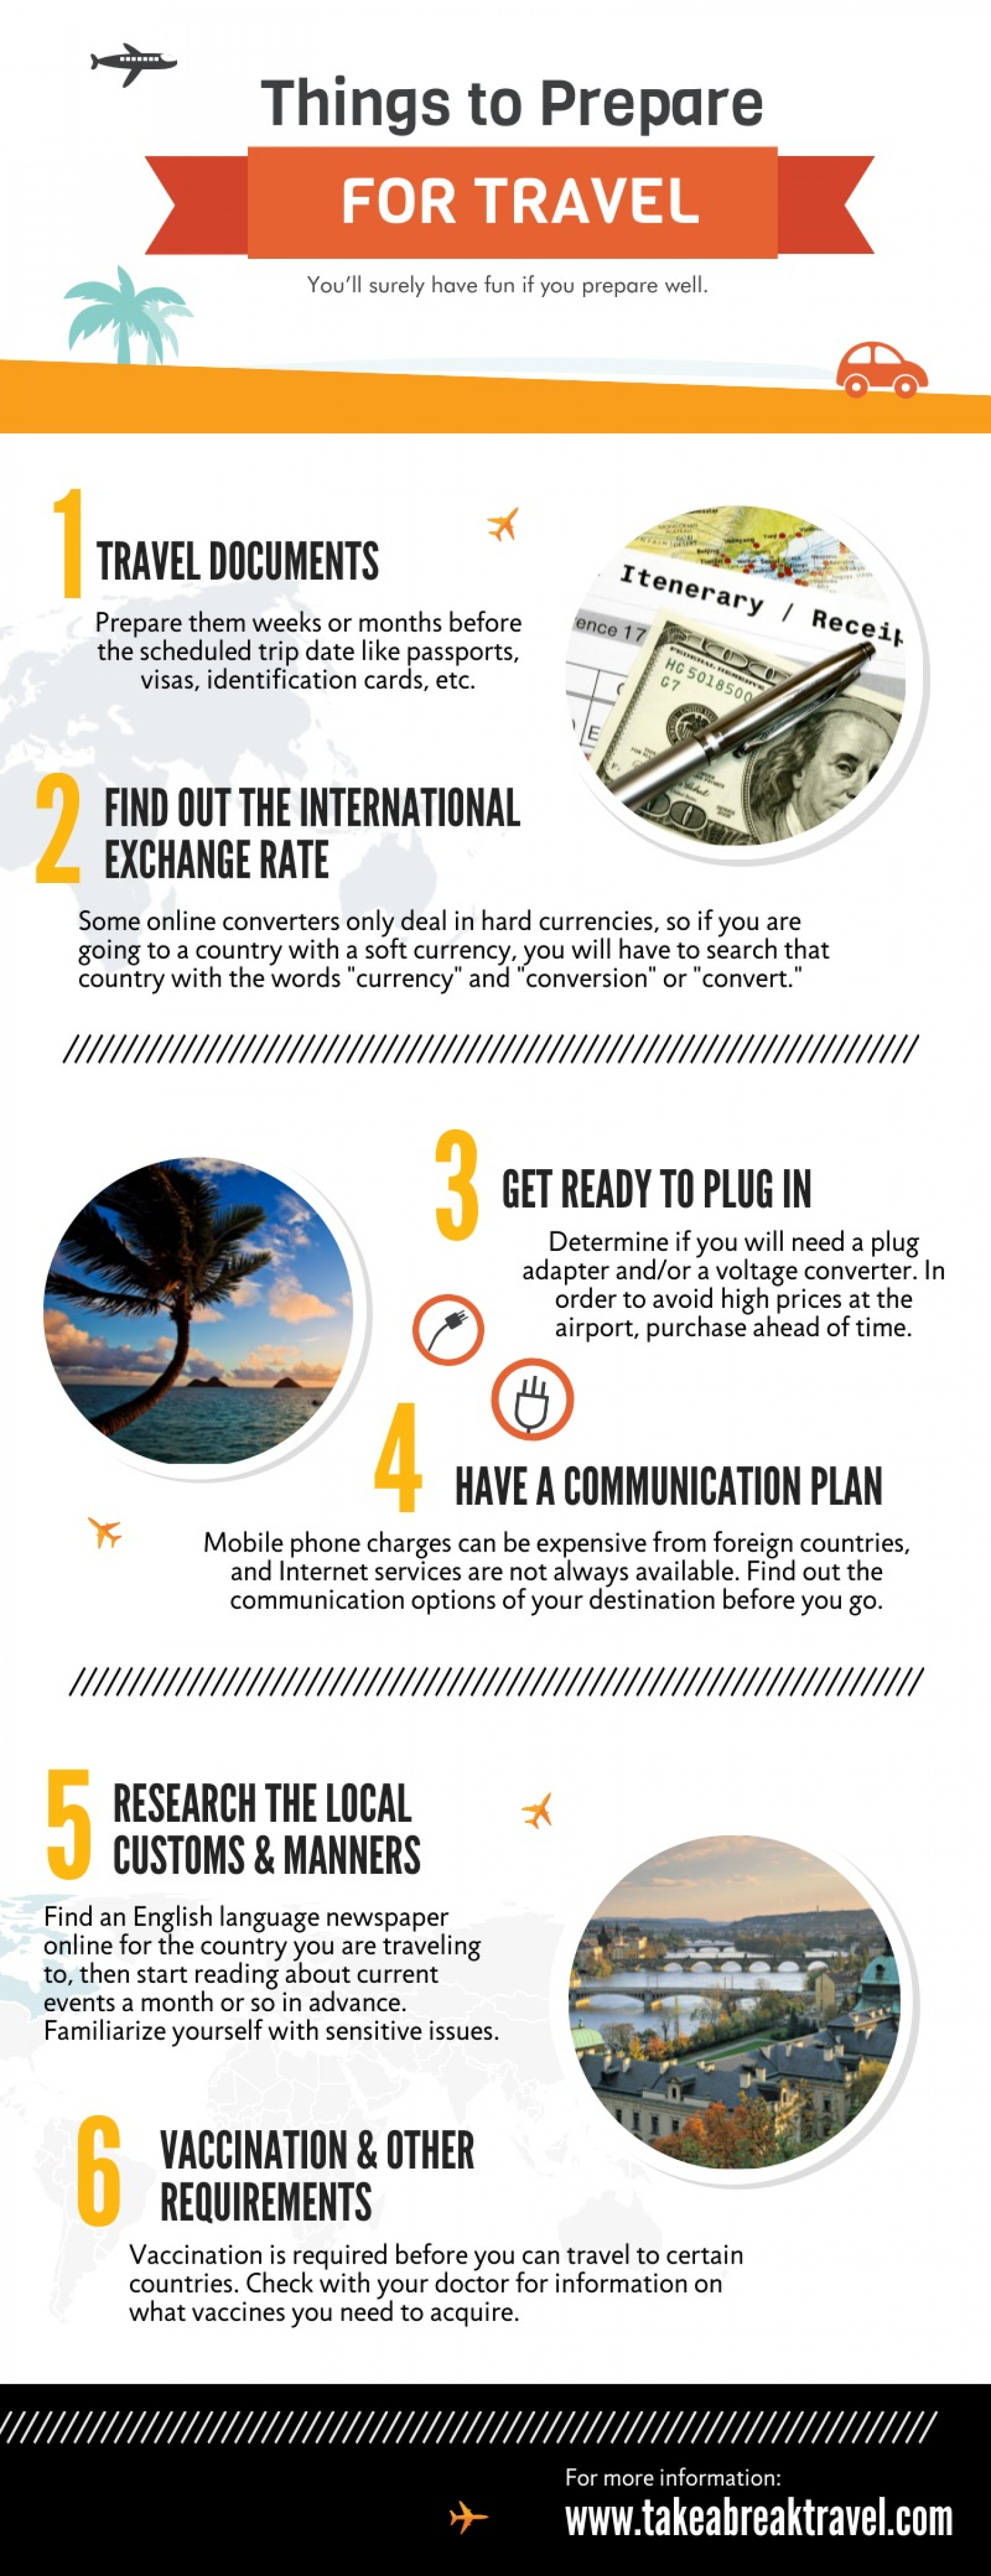 Take a Break Travel Presents Infographic